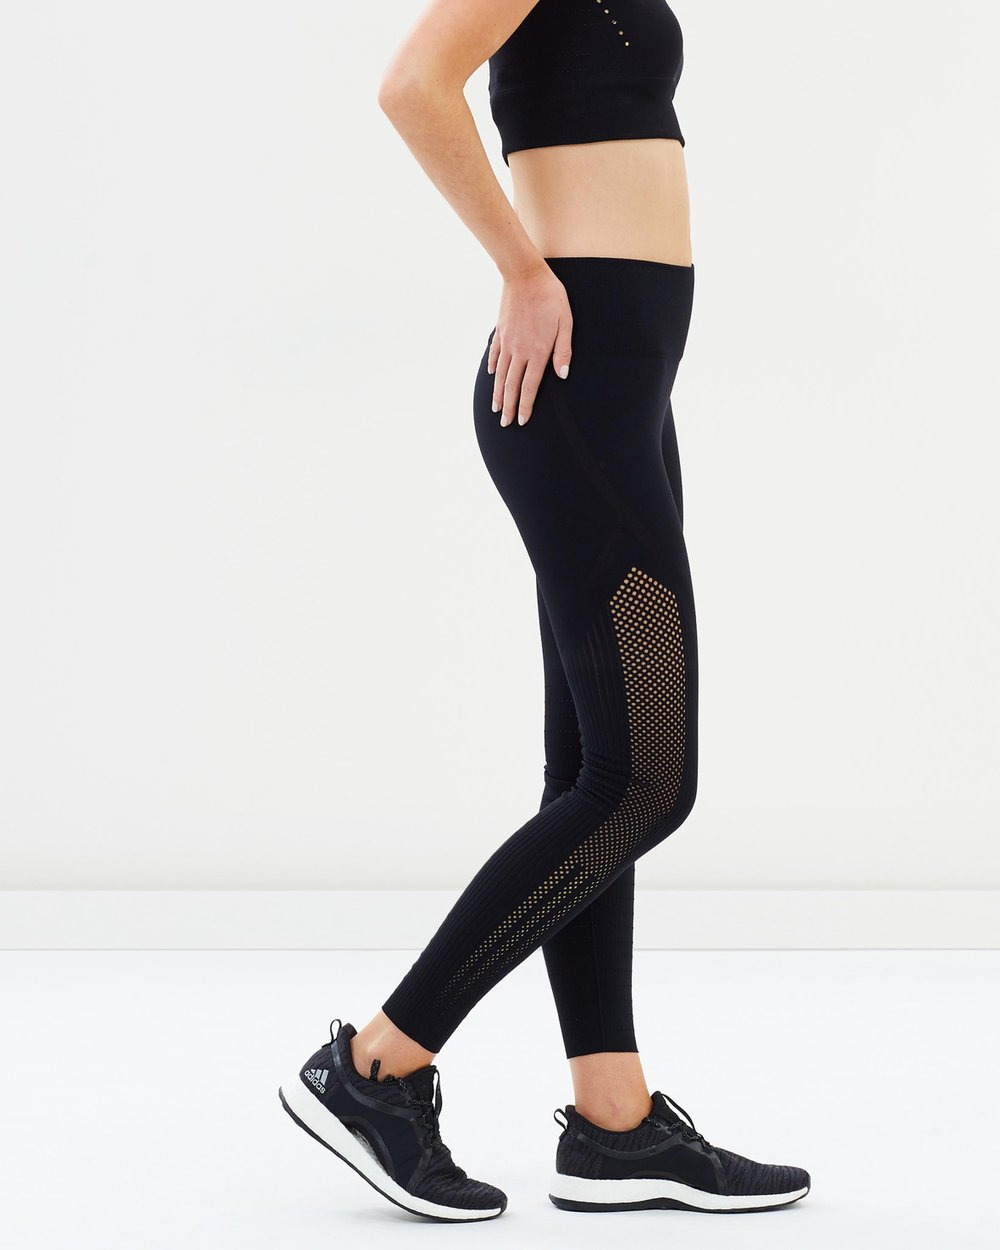 305e043e9a8a7 Warp Knit High Rise 7 8 Tights By Adidas Performance Online The